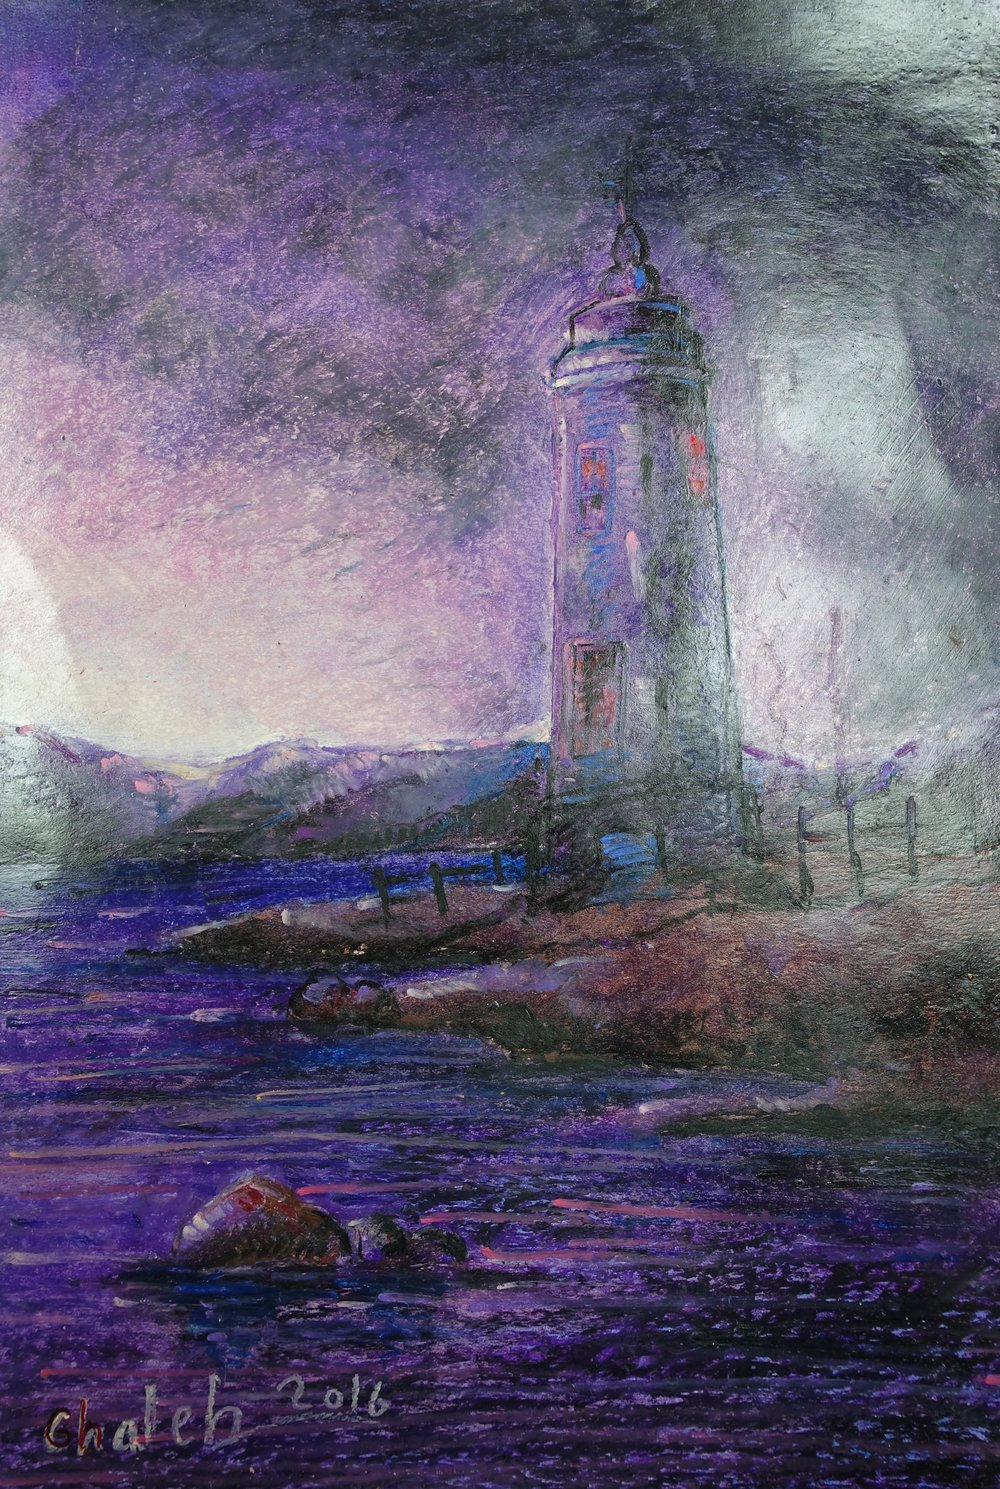 Ghaleb Al-Bihani, Lighthouse, 2016.